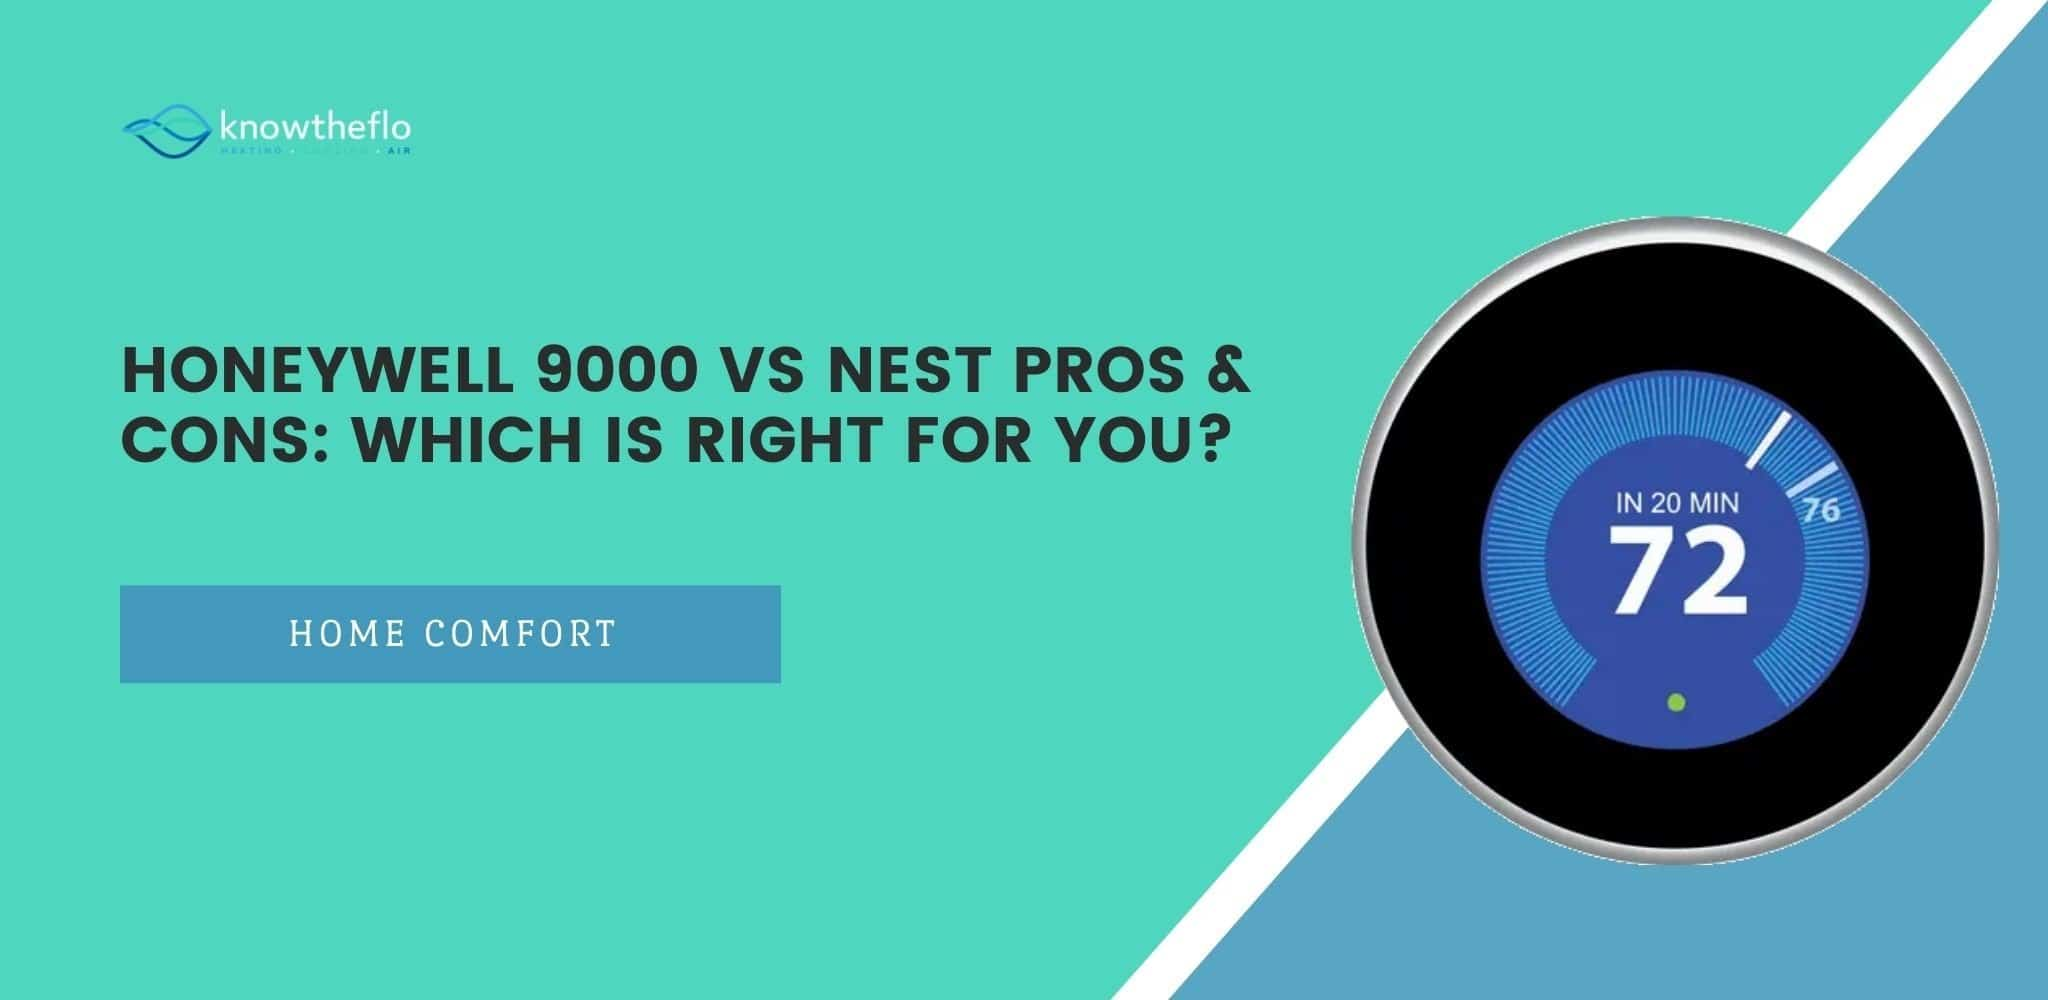 Honeywell 9000 vs Nest Pros & Cons – Which is right for you